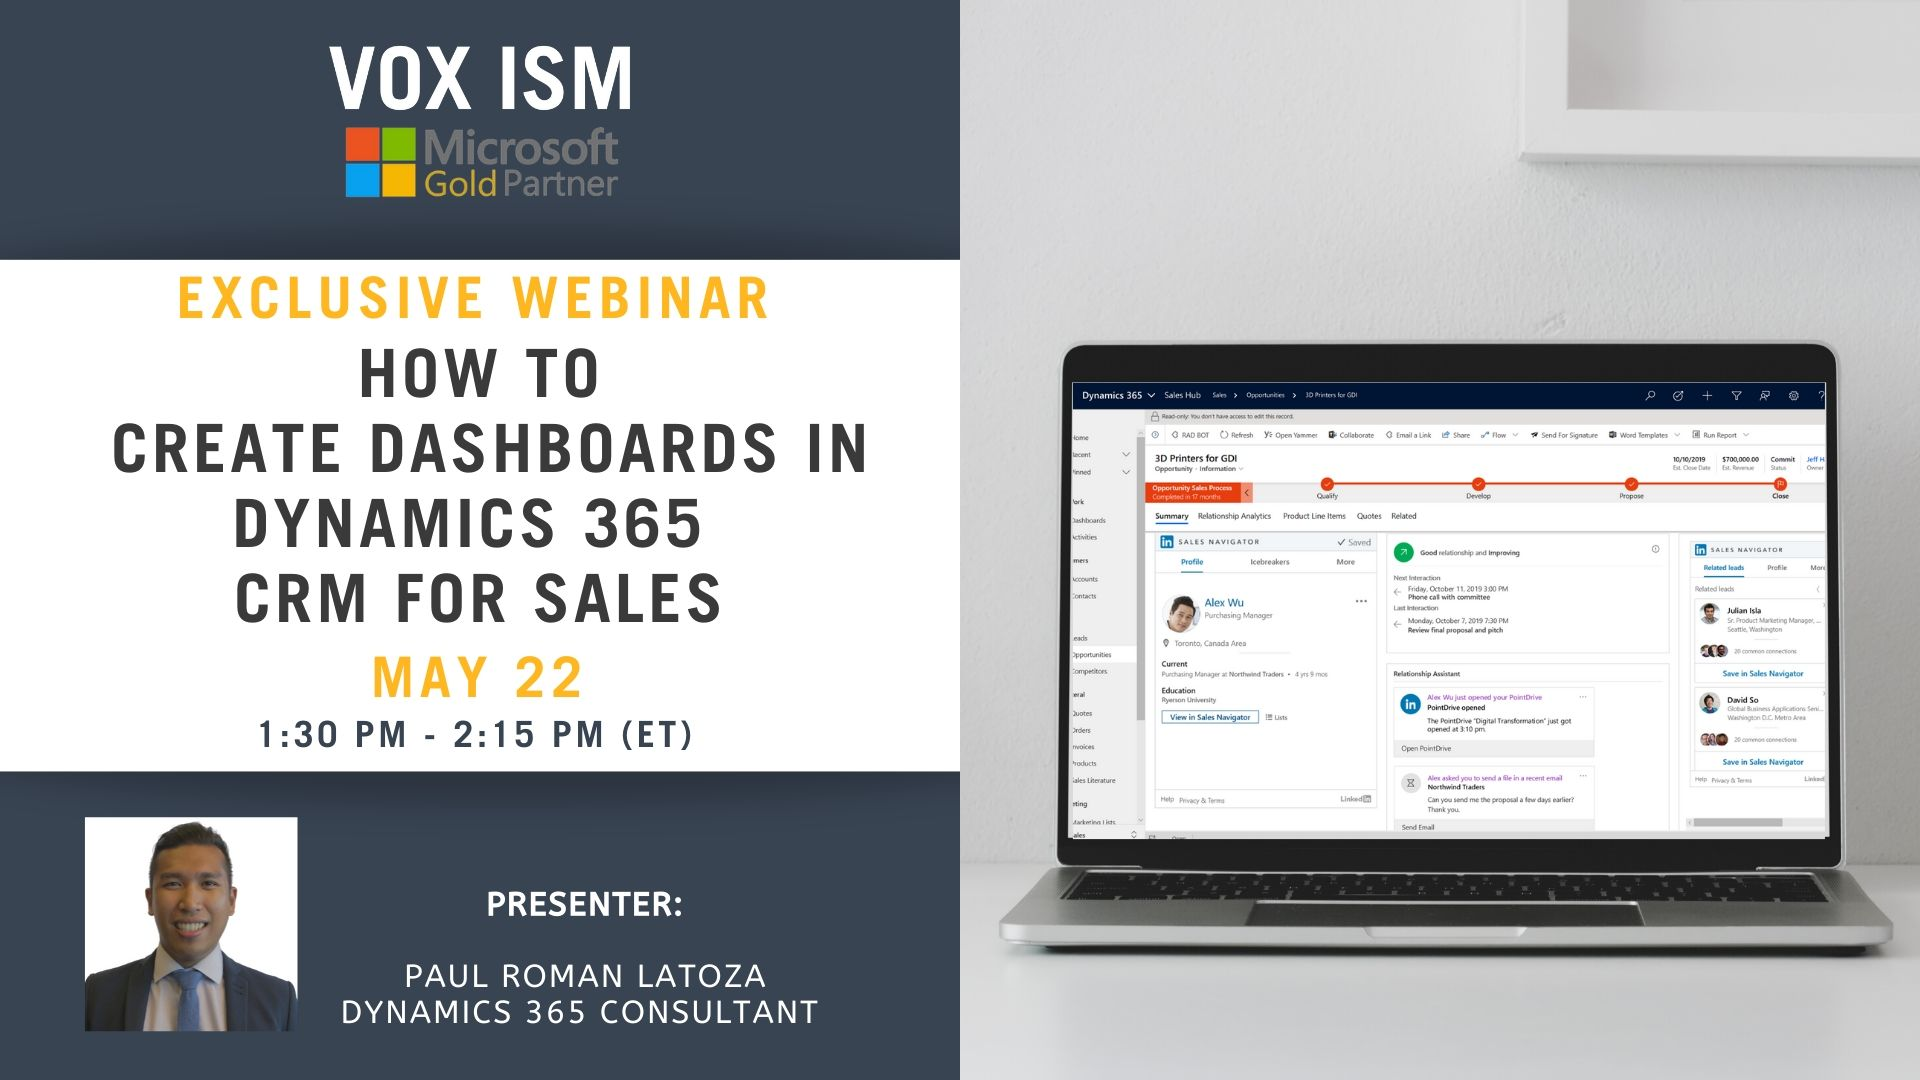 How to Create Dashboards in Dynamics 365 for Sales - May 22 - Webinar VOX ISM